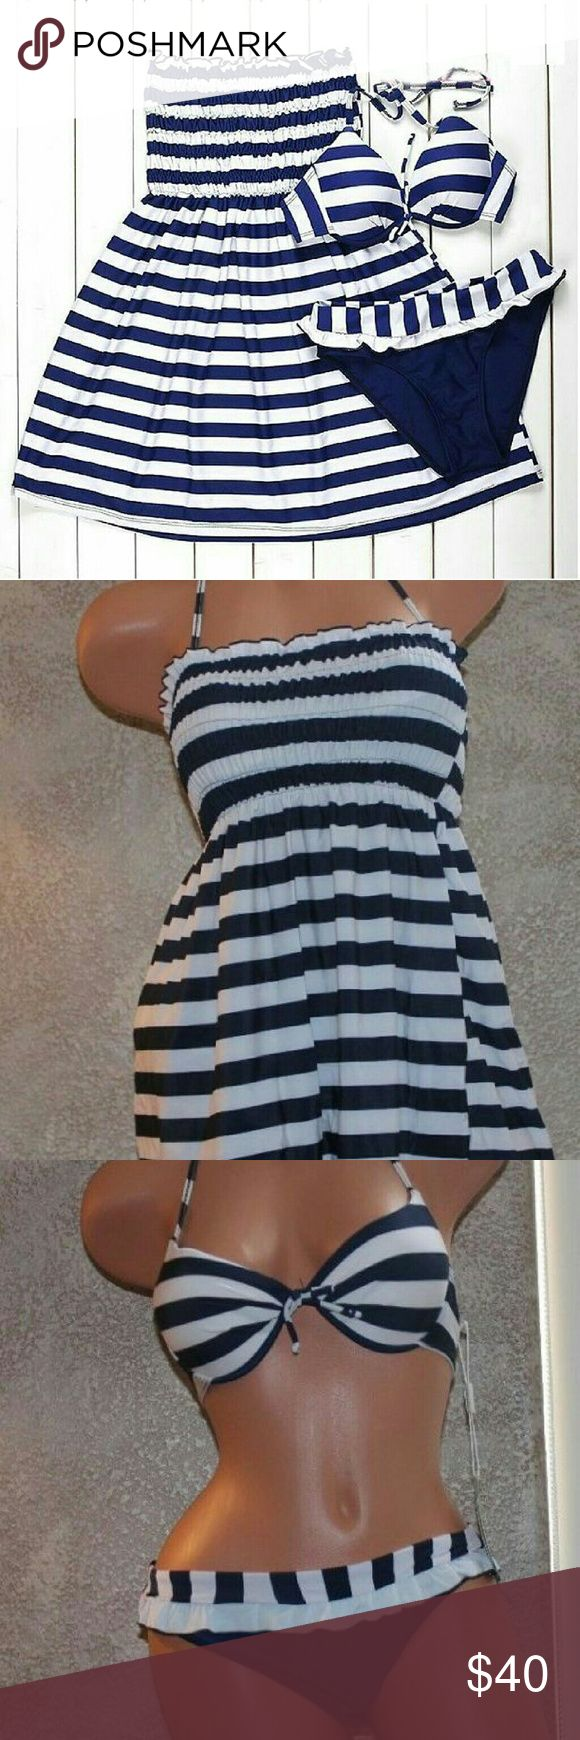 "BLUE WHITE STRIPED 3PC BIKINI SET COVER UP PLEASE CHECK SIZING AS THUS SET RUNS SMALLER, You are buying a woman's 3pc bikini set, Top, Bottom & Cover up/Dress. It is a woman's size US size S (Tag says Large but is an Asian sizing-See first size chart below), It is Bikini top laying flat measures 10.5"" inches wide x 7.5"" inches long (not measuring straps) unstretched , The bikini top is padded & can be removed. The bottom measures 14"" inches wide x 10"" inches long unstretched. The cover up…"